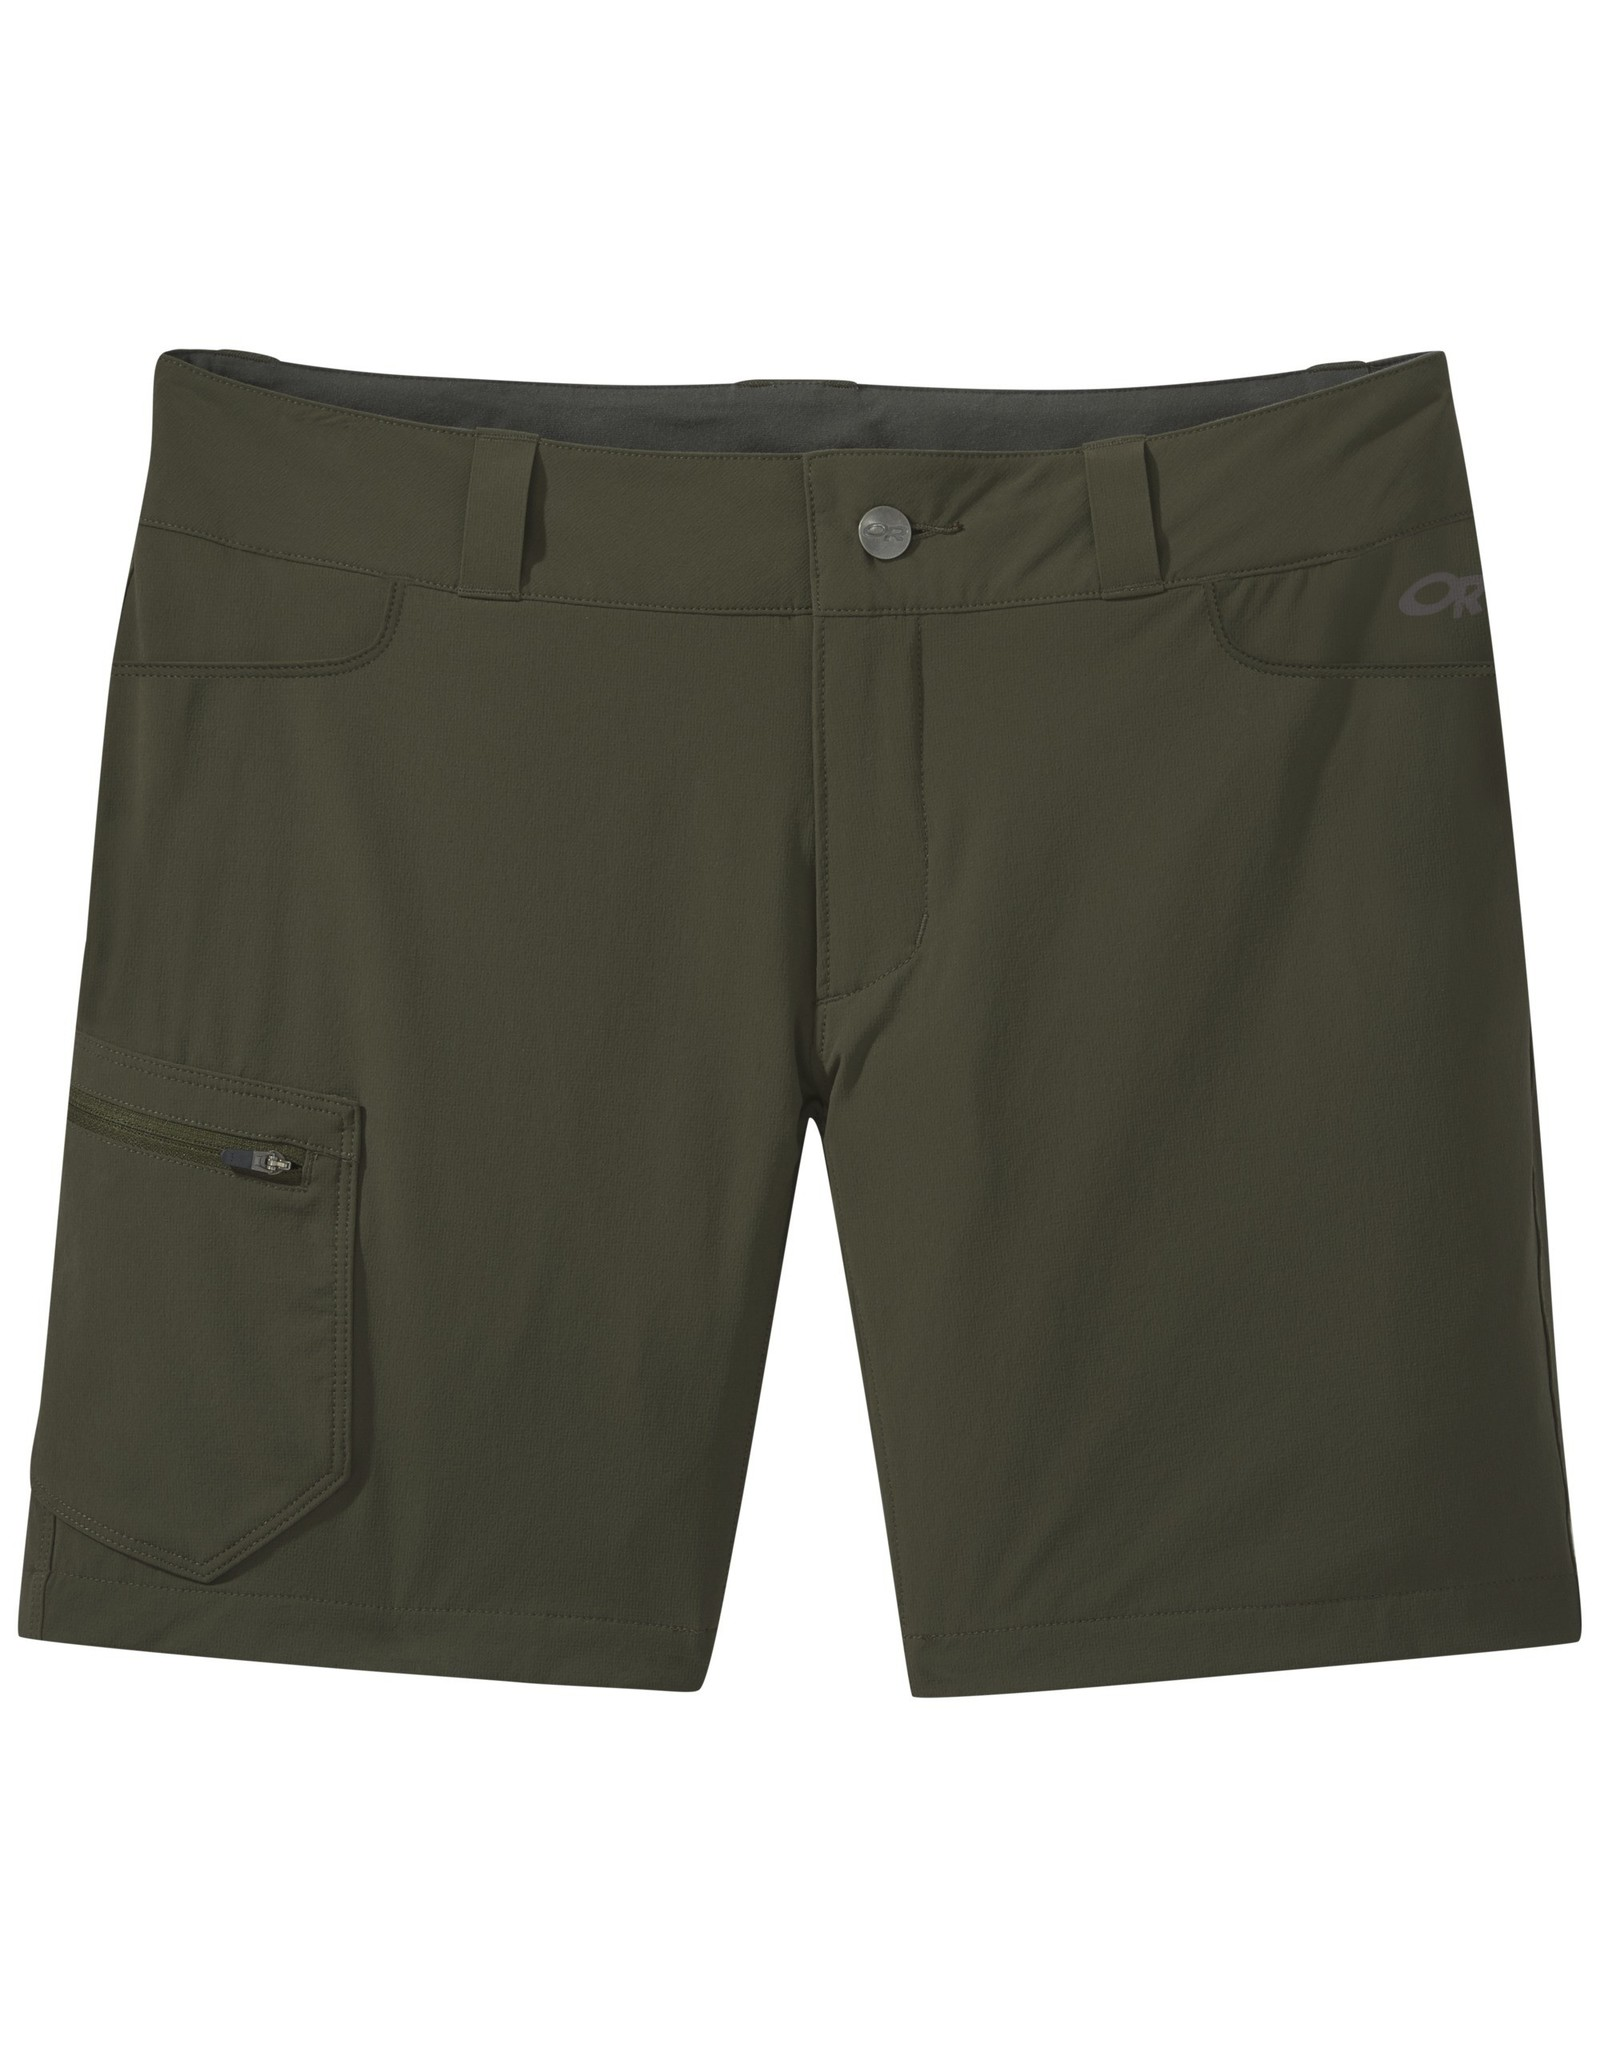 "Outdoor Research Outdoor Research Ferrosi Shorts 7"" - Women"